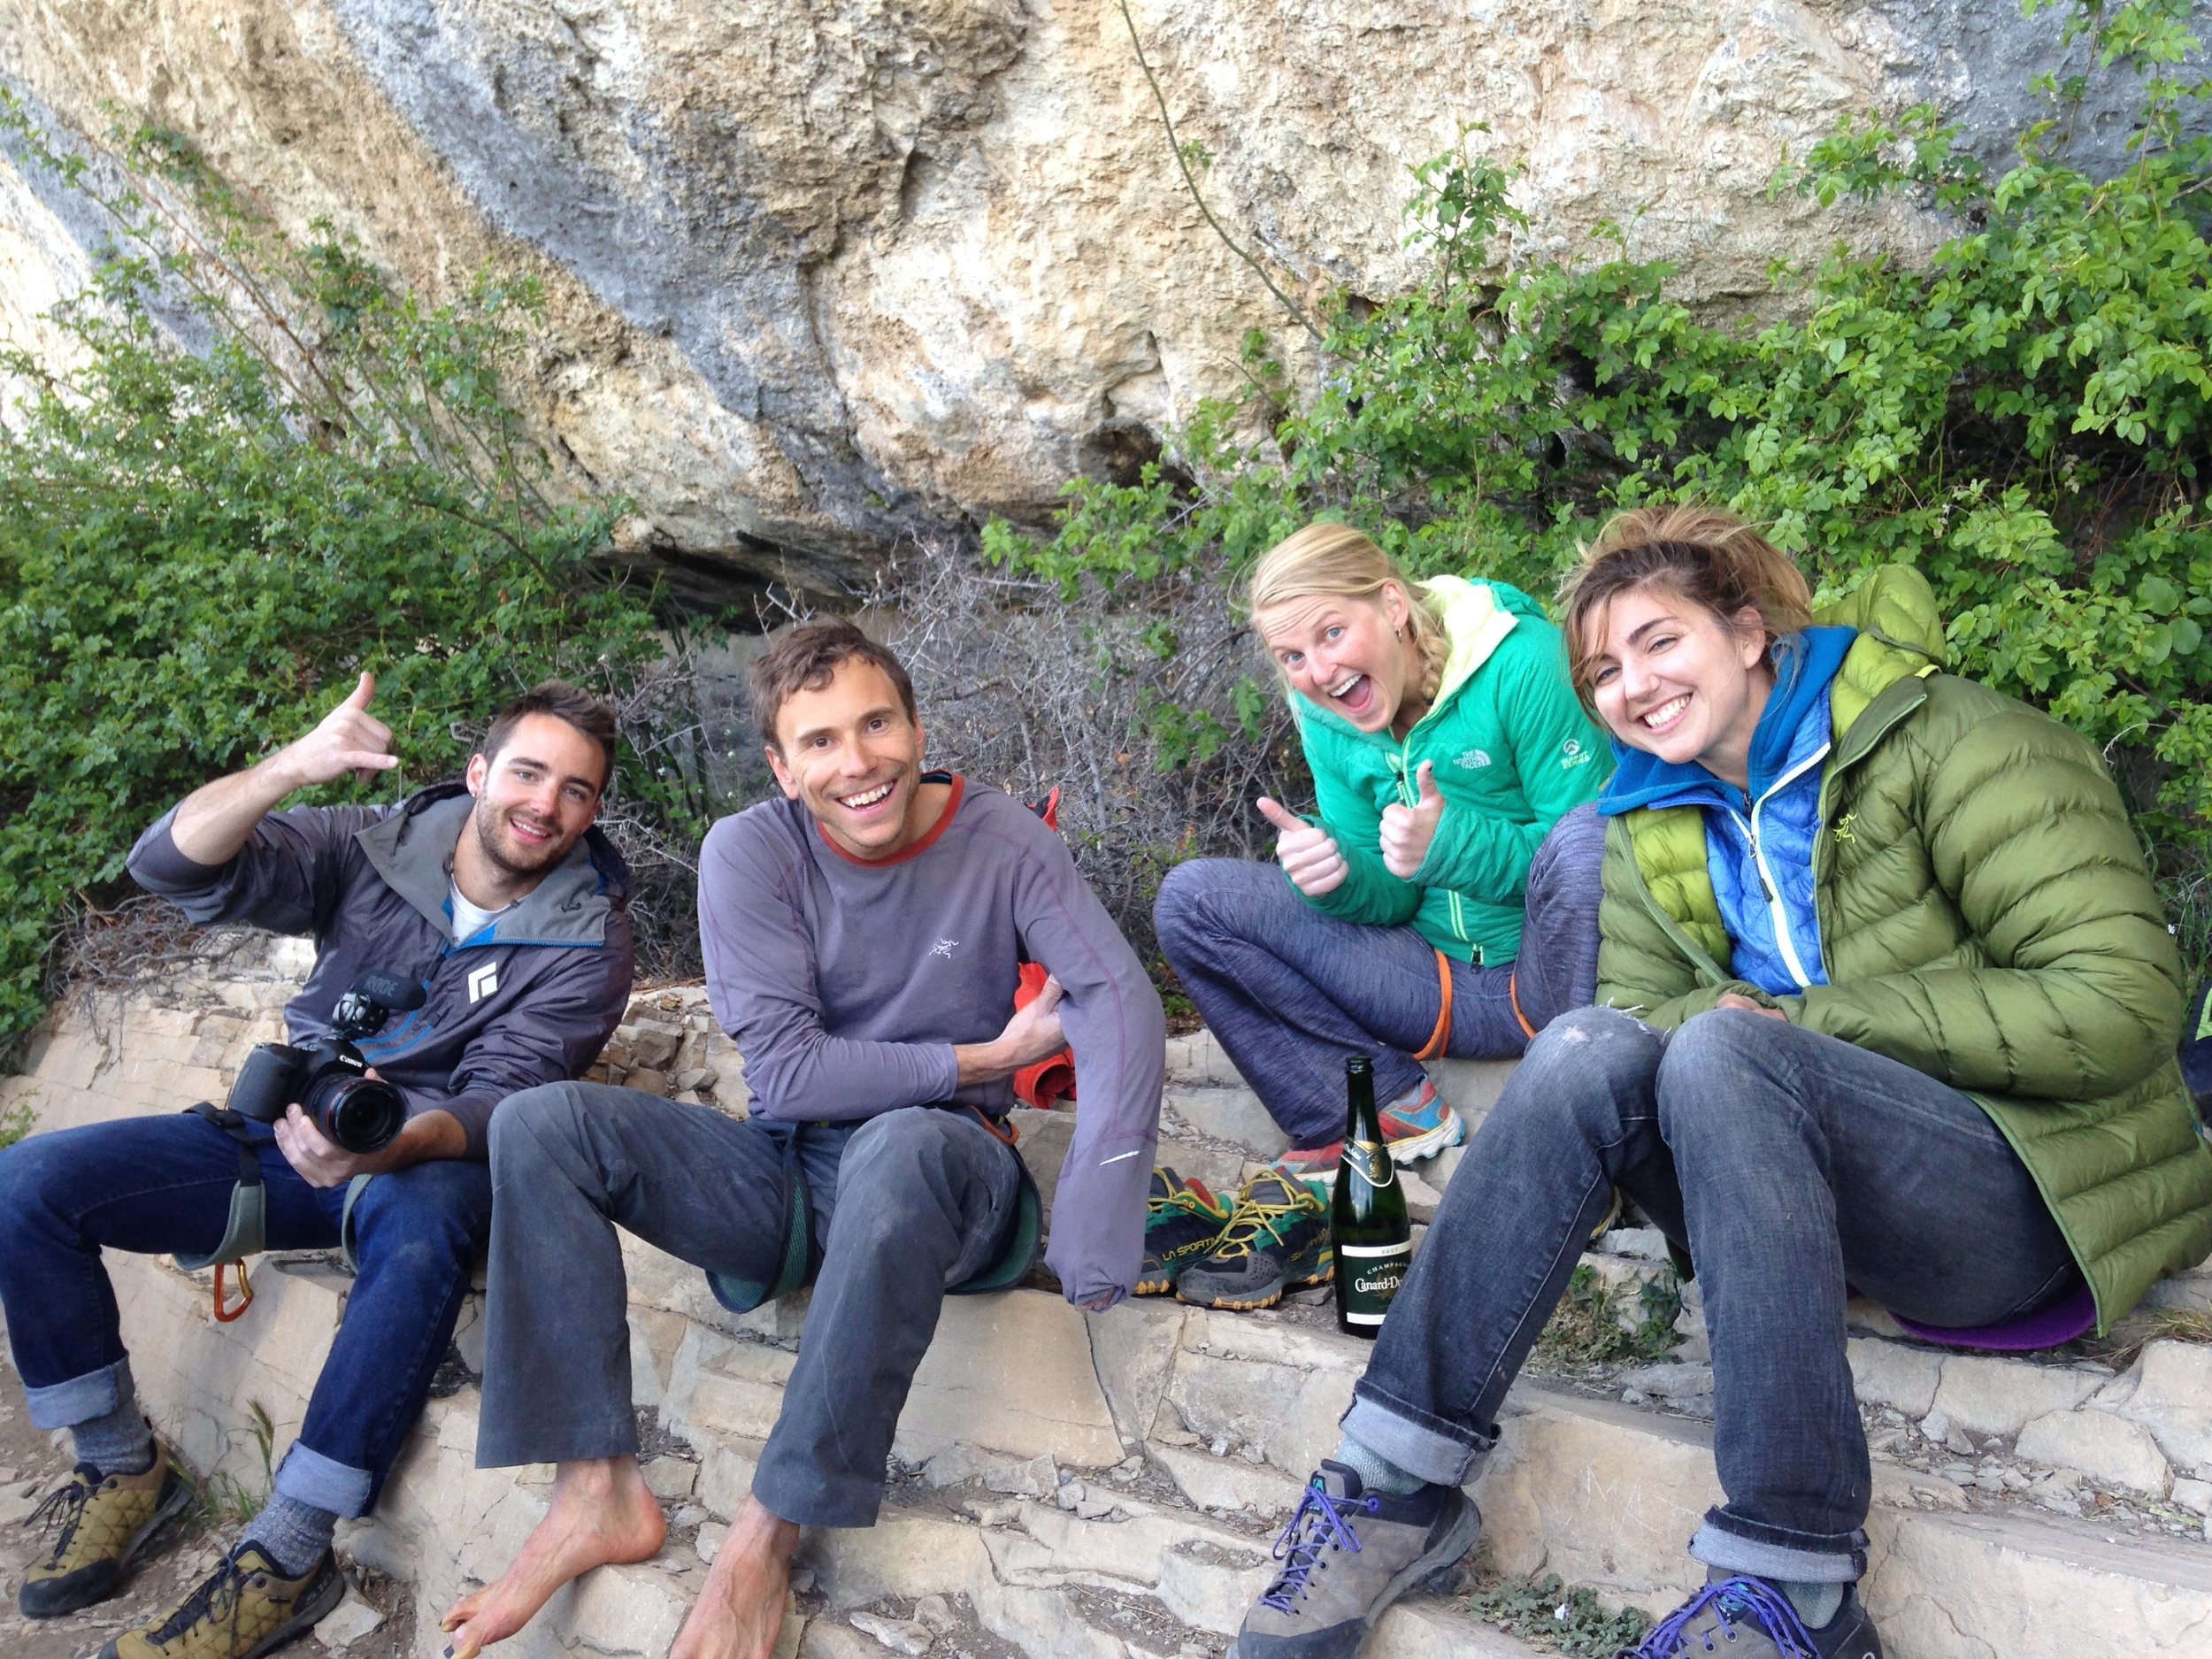 The Ceuse team celebrating at the bottom of the cliff after Jonathan's send